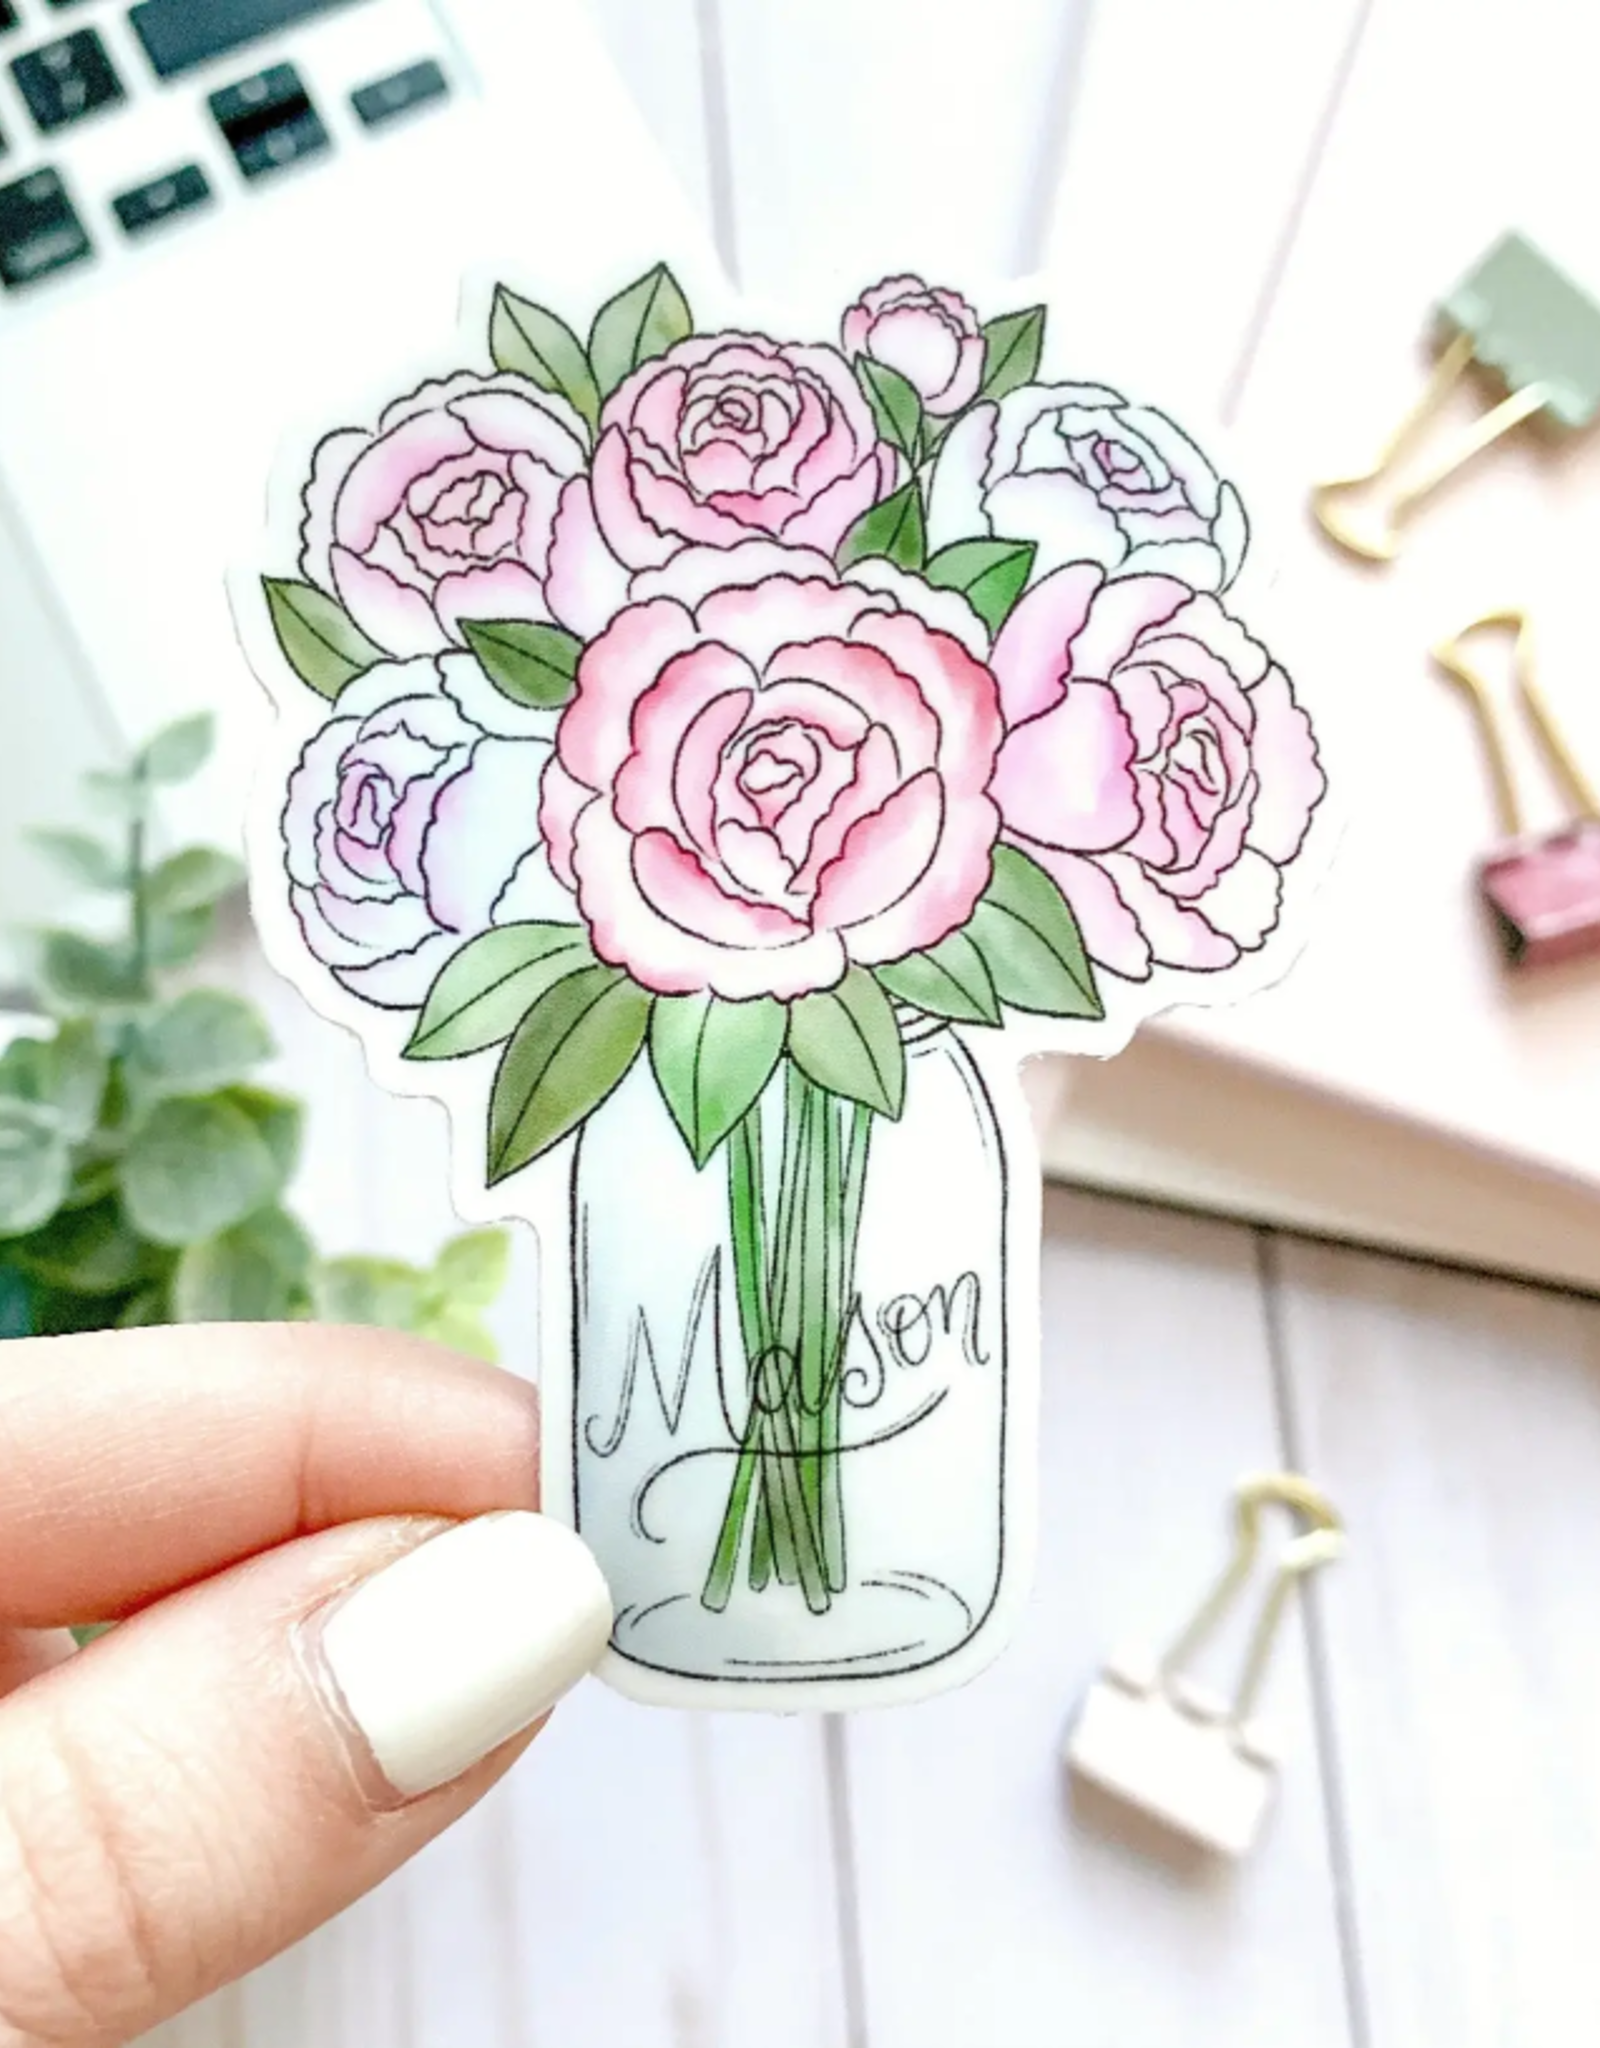 Mason Jar Peonies waterproof sticker